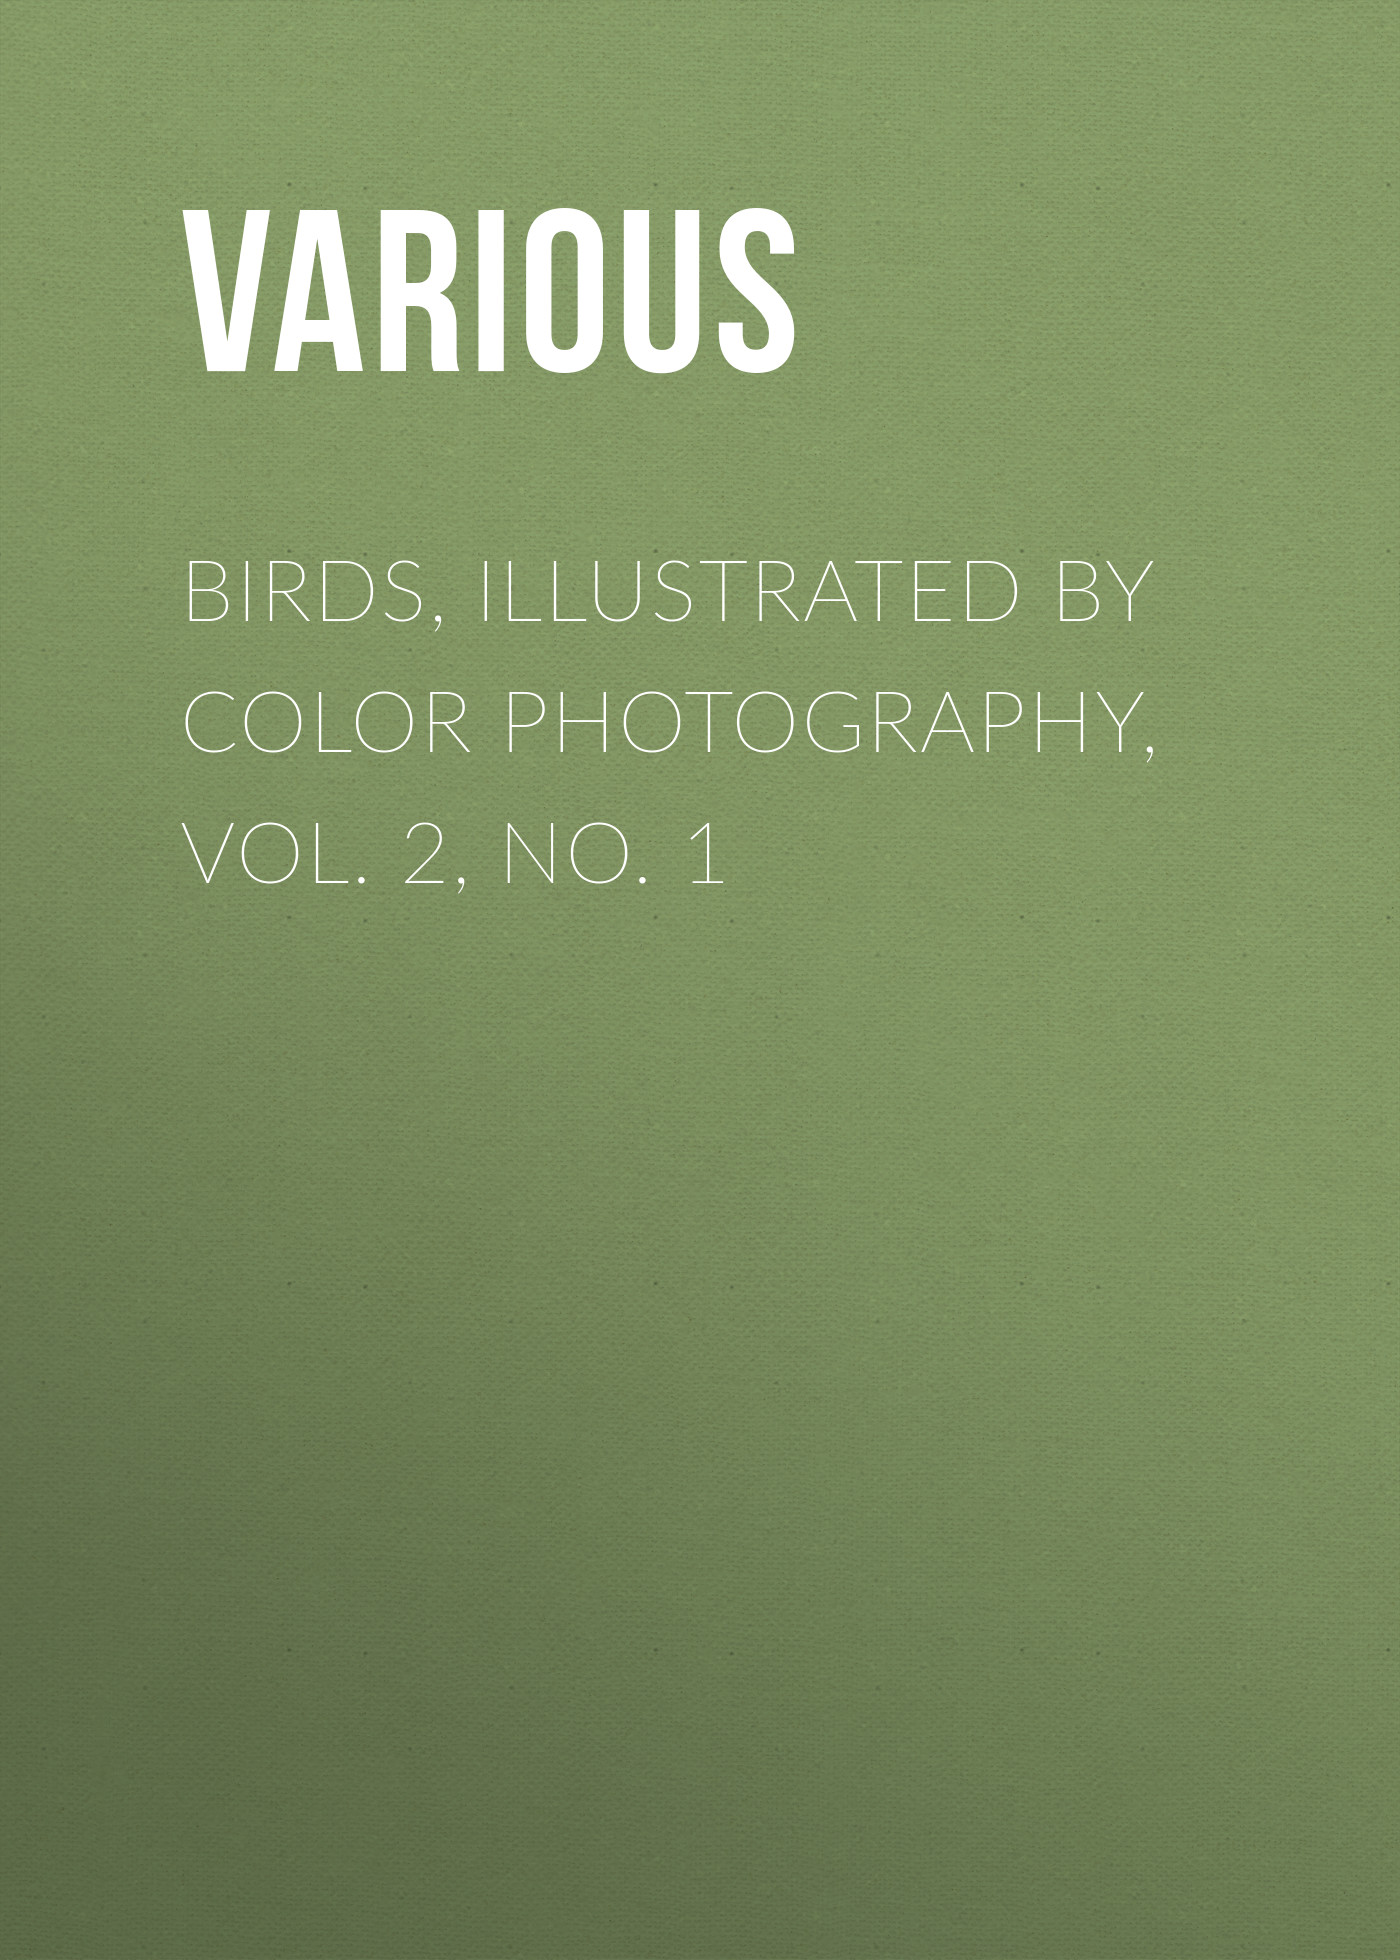 Various Birds, Illustrated by Color Photography, Vol. 2, No. 1 d 6521 dark grey backdrop newborn photography backdrop retro pure color pet photography backgrounds 4x6ft 1 25x2m